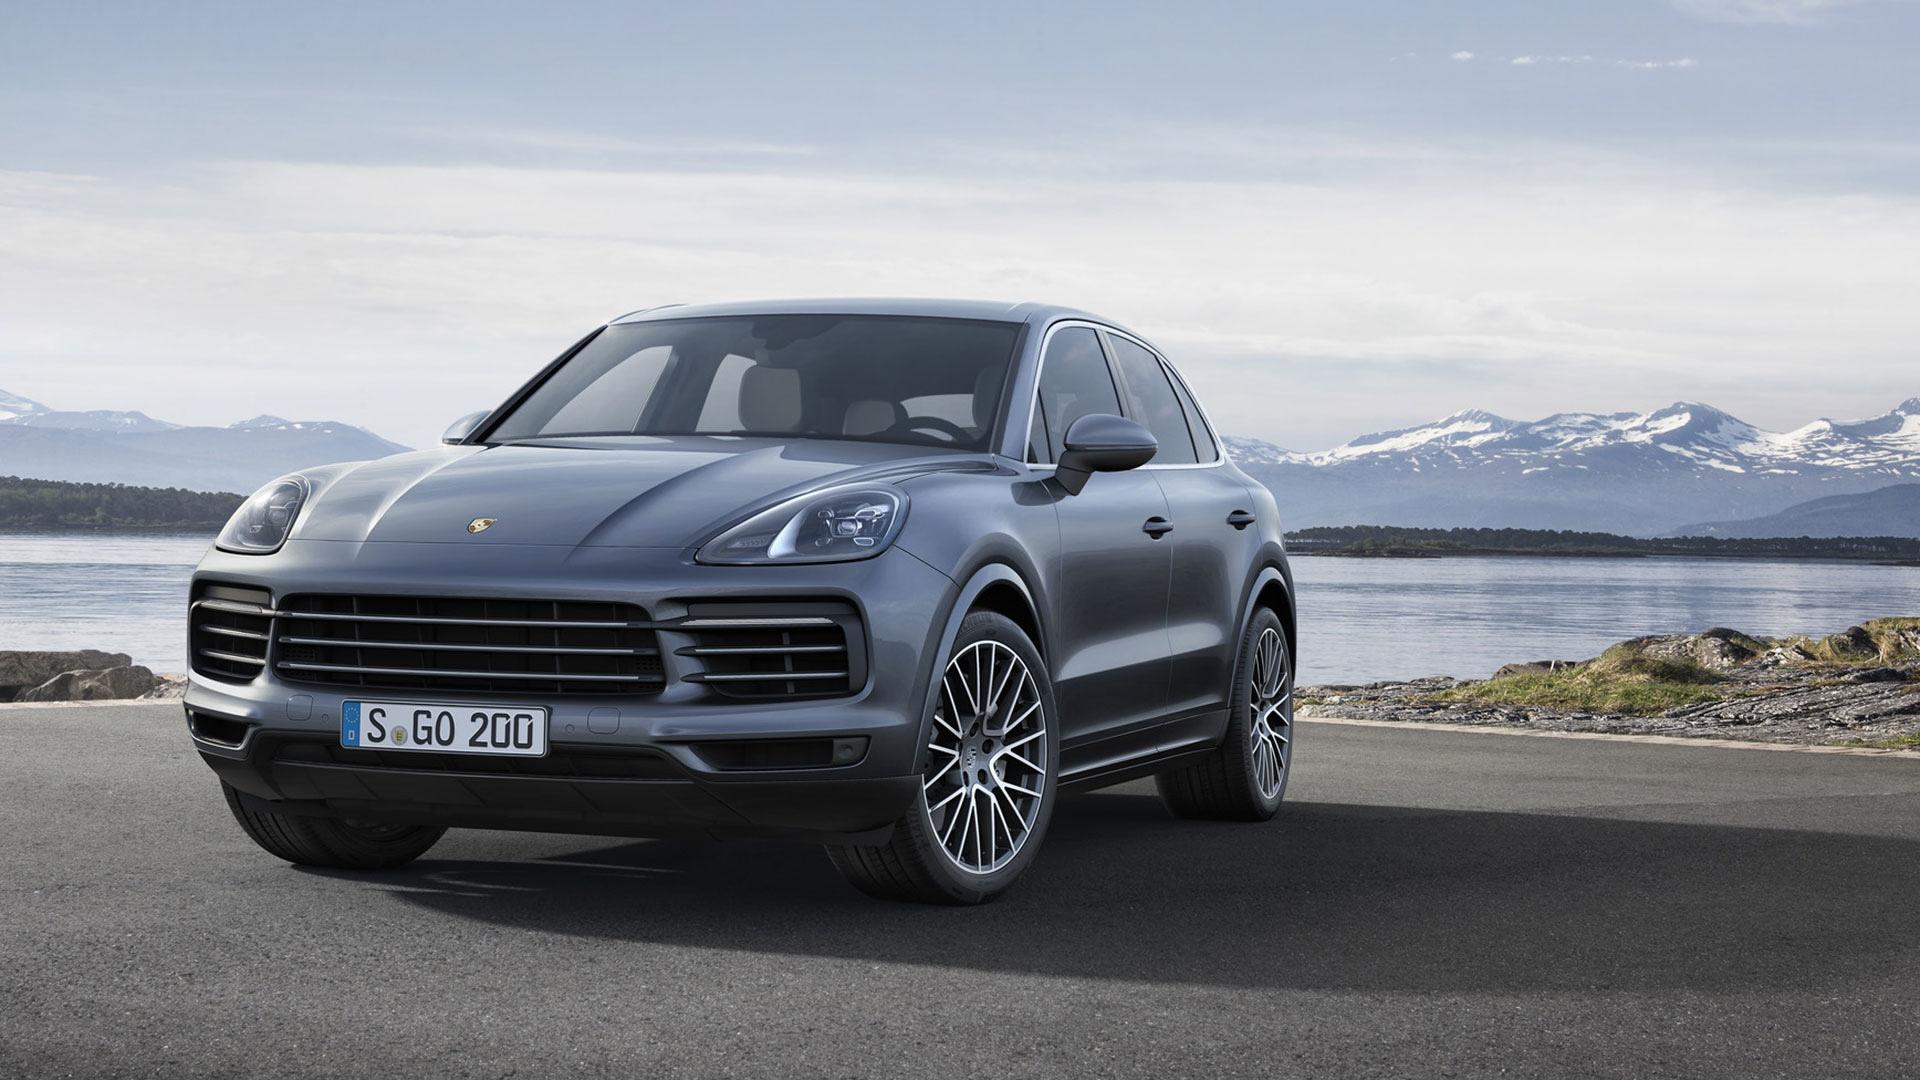 2019 Porsche Cayenne Revealed 65 Kg Lighter Two V6 Engines And Tungsten Brakes